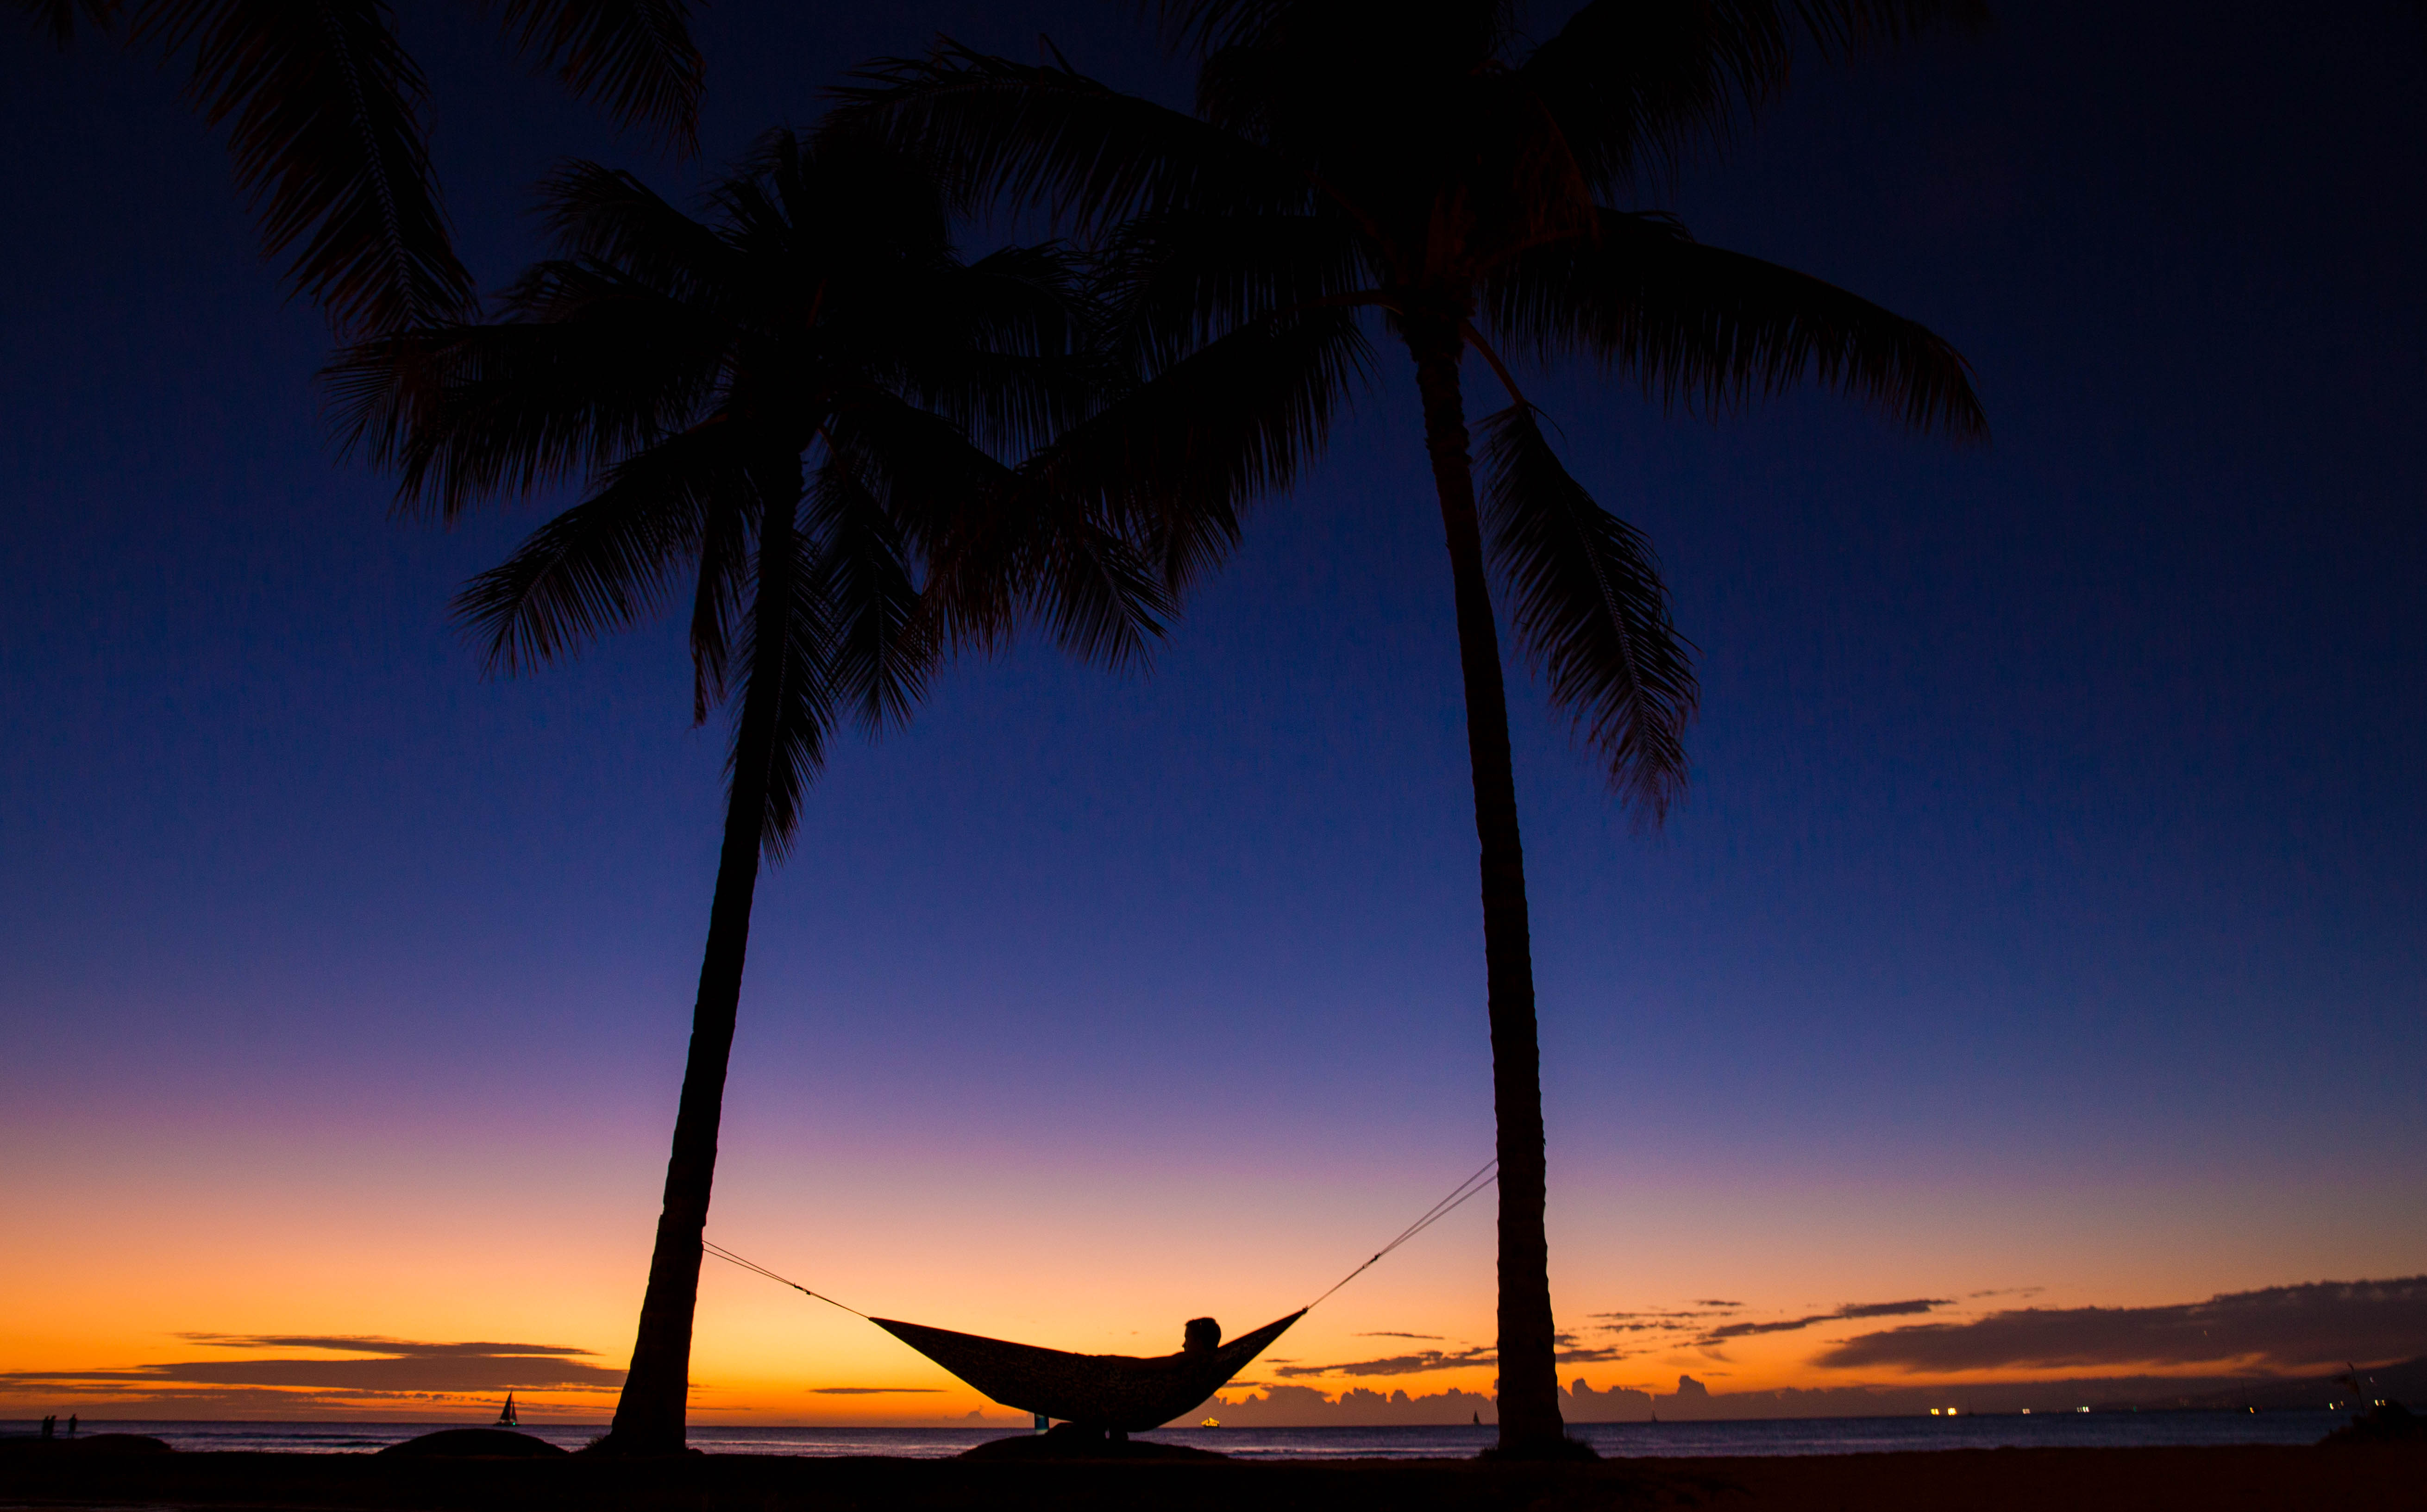 103613 download wallpaper Night, Palms, Dark, Silhouettes, Relaxation, Rest, Tropics, Hammock screensavers and pictures for free